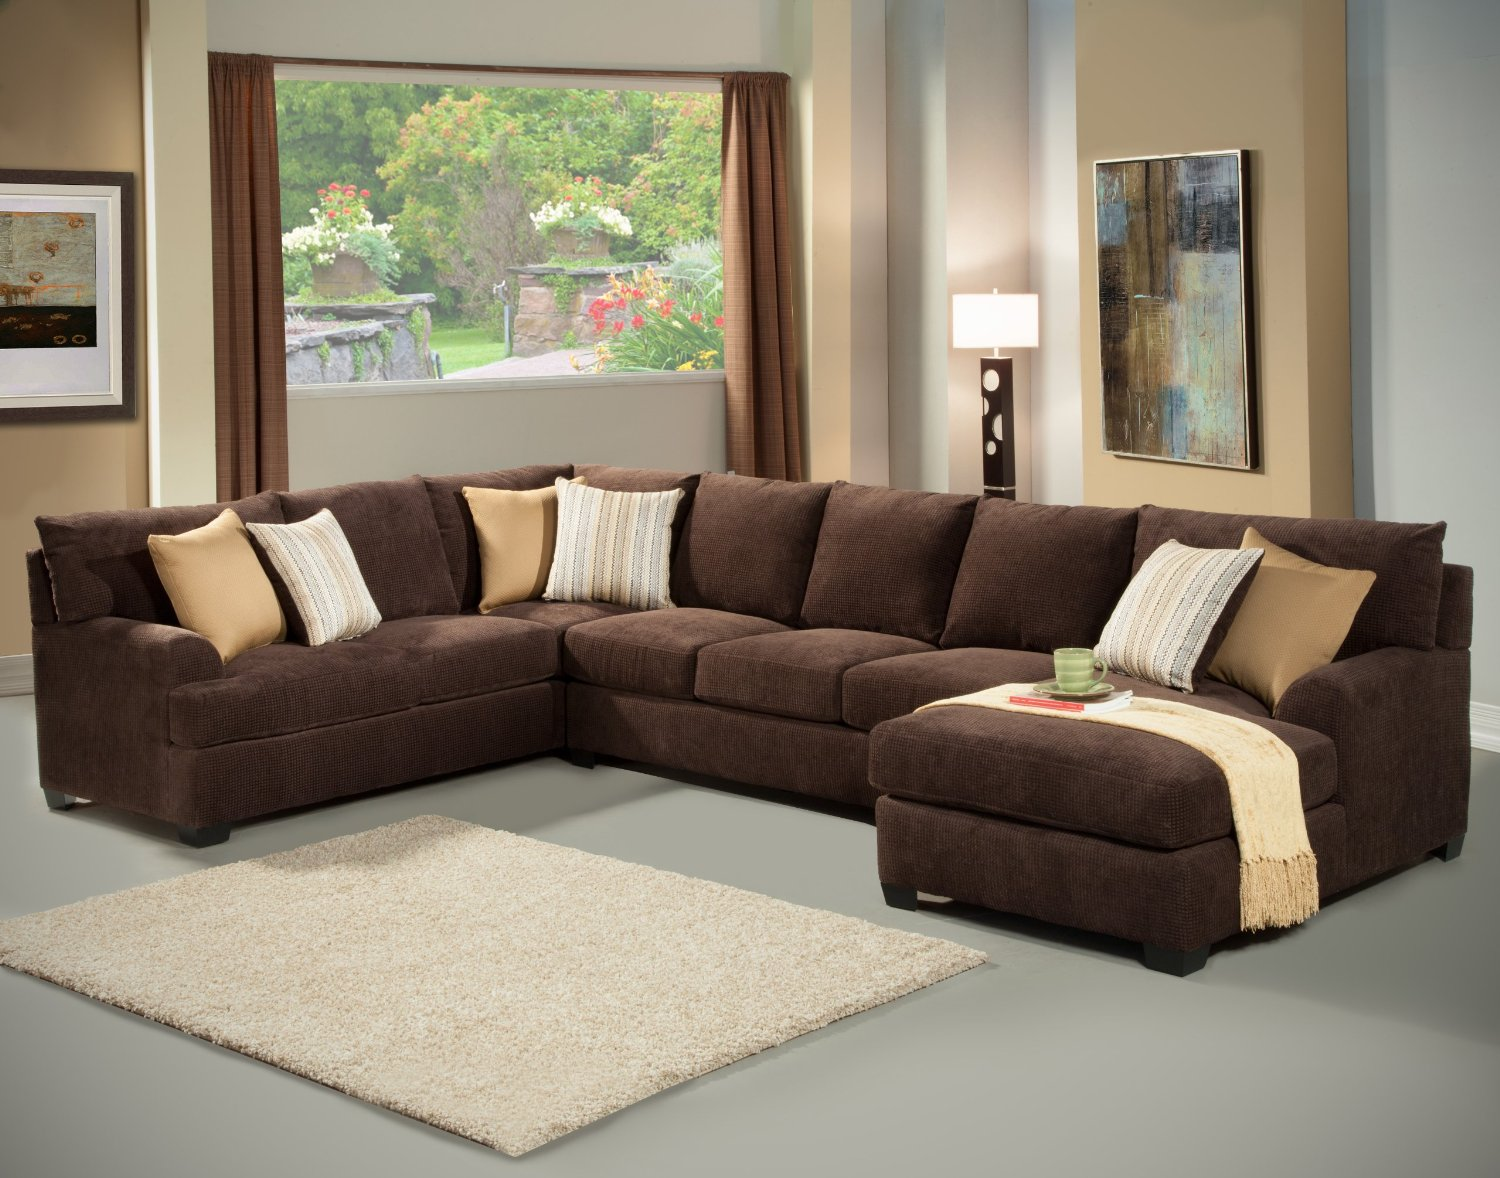 brown sectional sofa beautiful brown sectional sofas 20 in contemporary sofa inspiration with brown  sectional ELRODOD